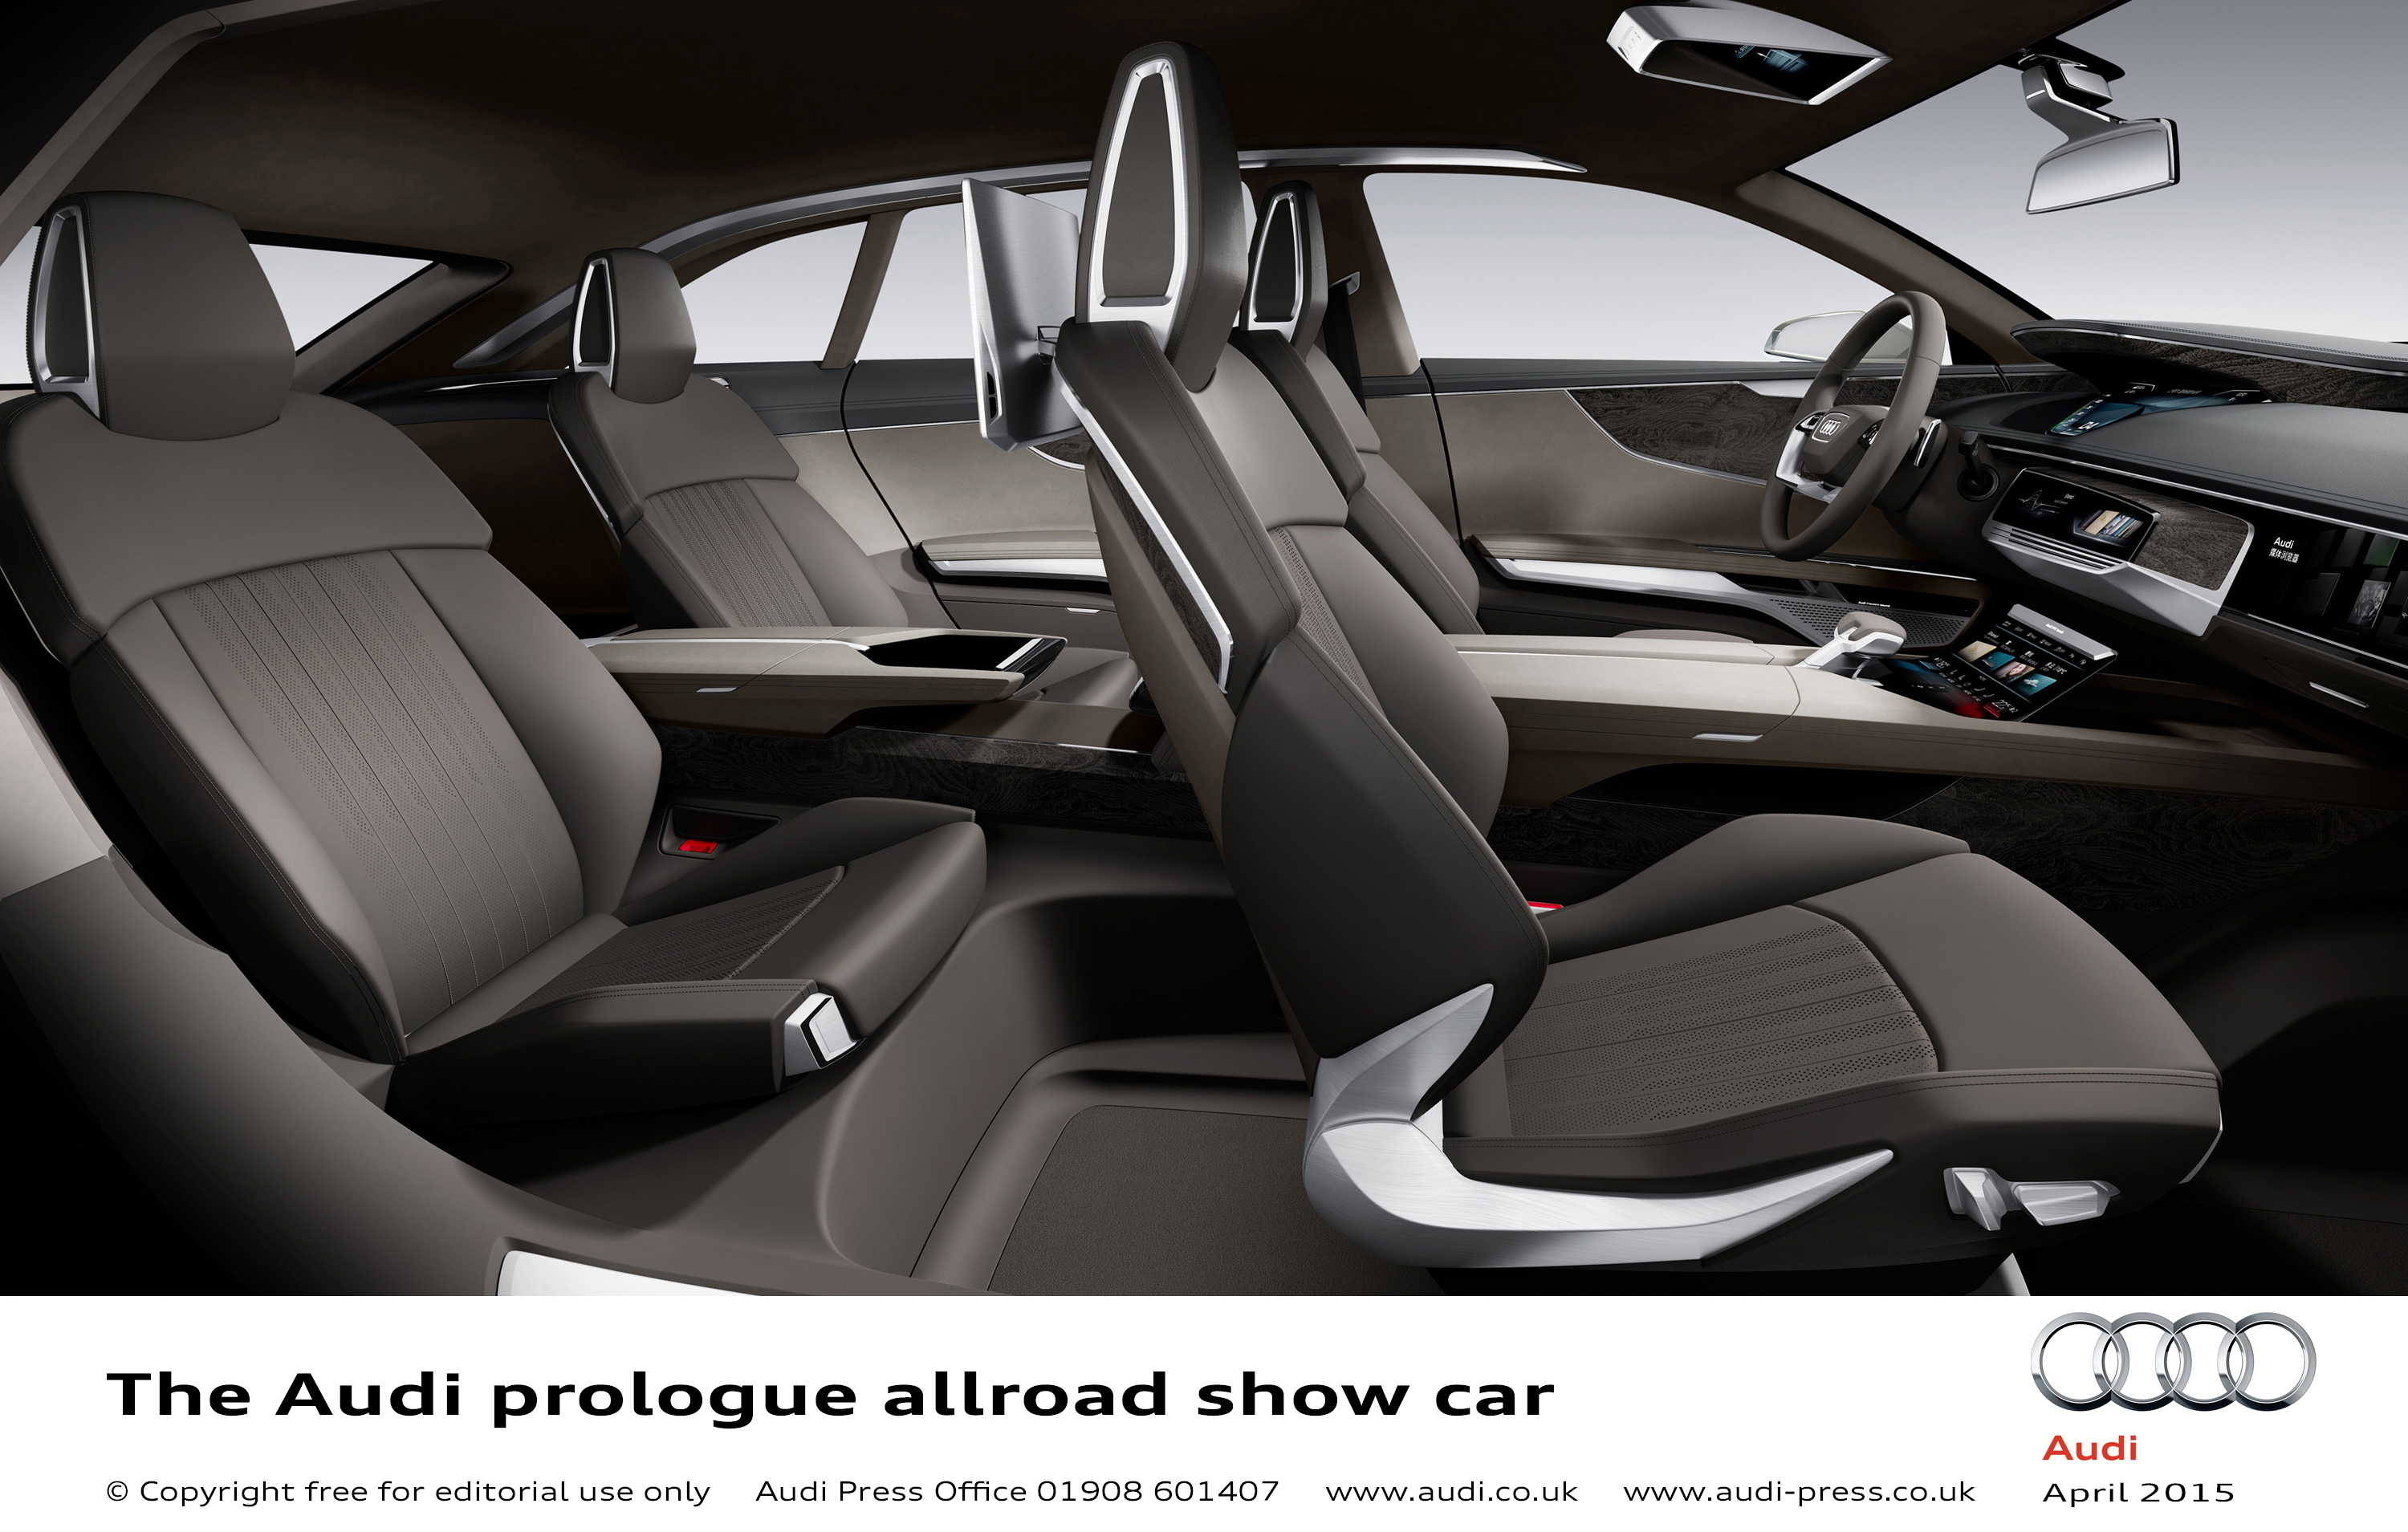 audi prologue allroad show car scales new heights in shanghai littlegate publishing. Black Bedroom Furniture Sets. Home Design Ideas